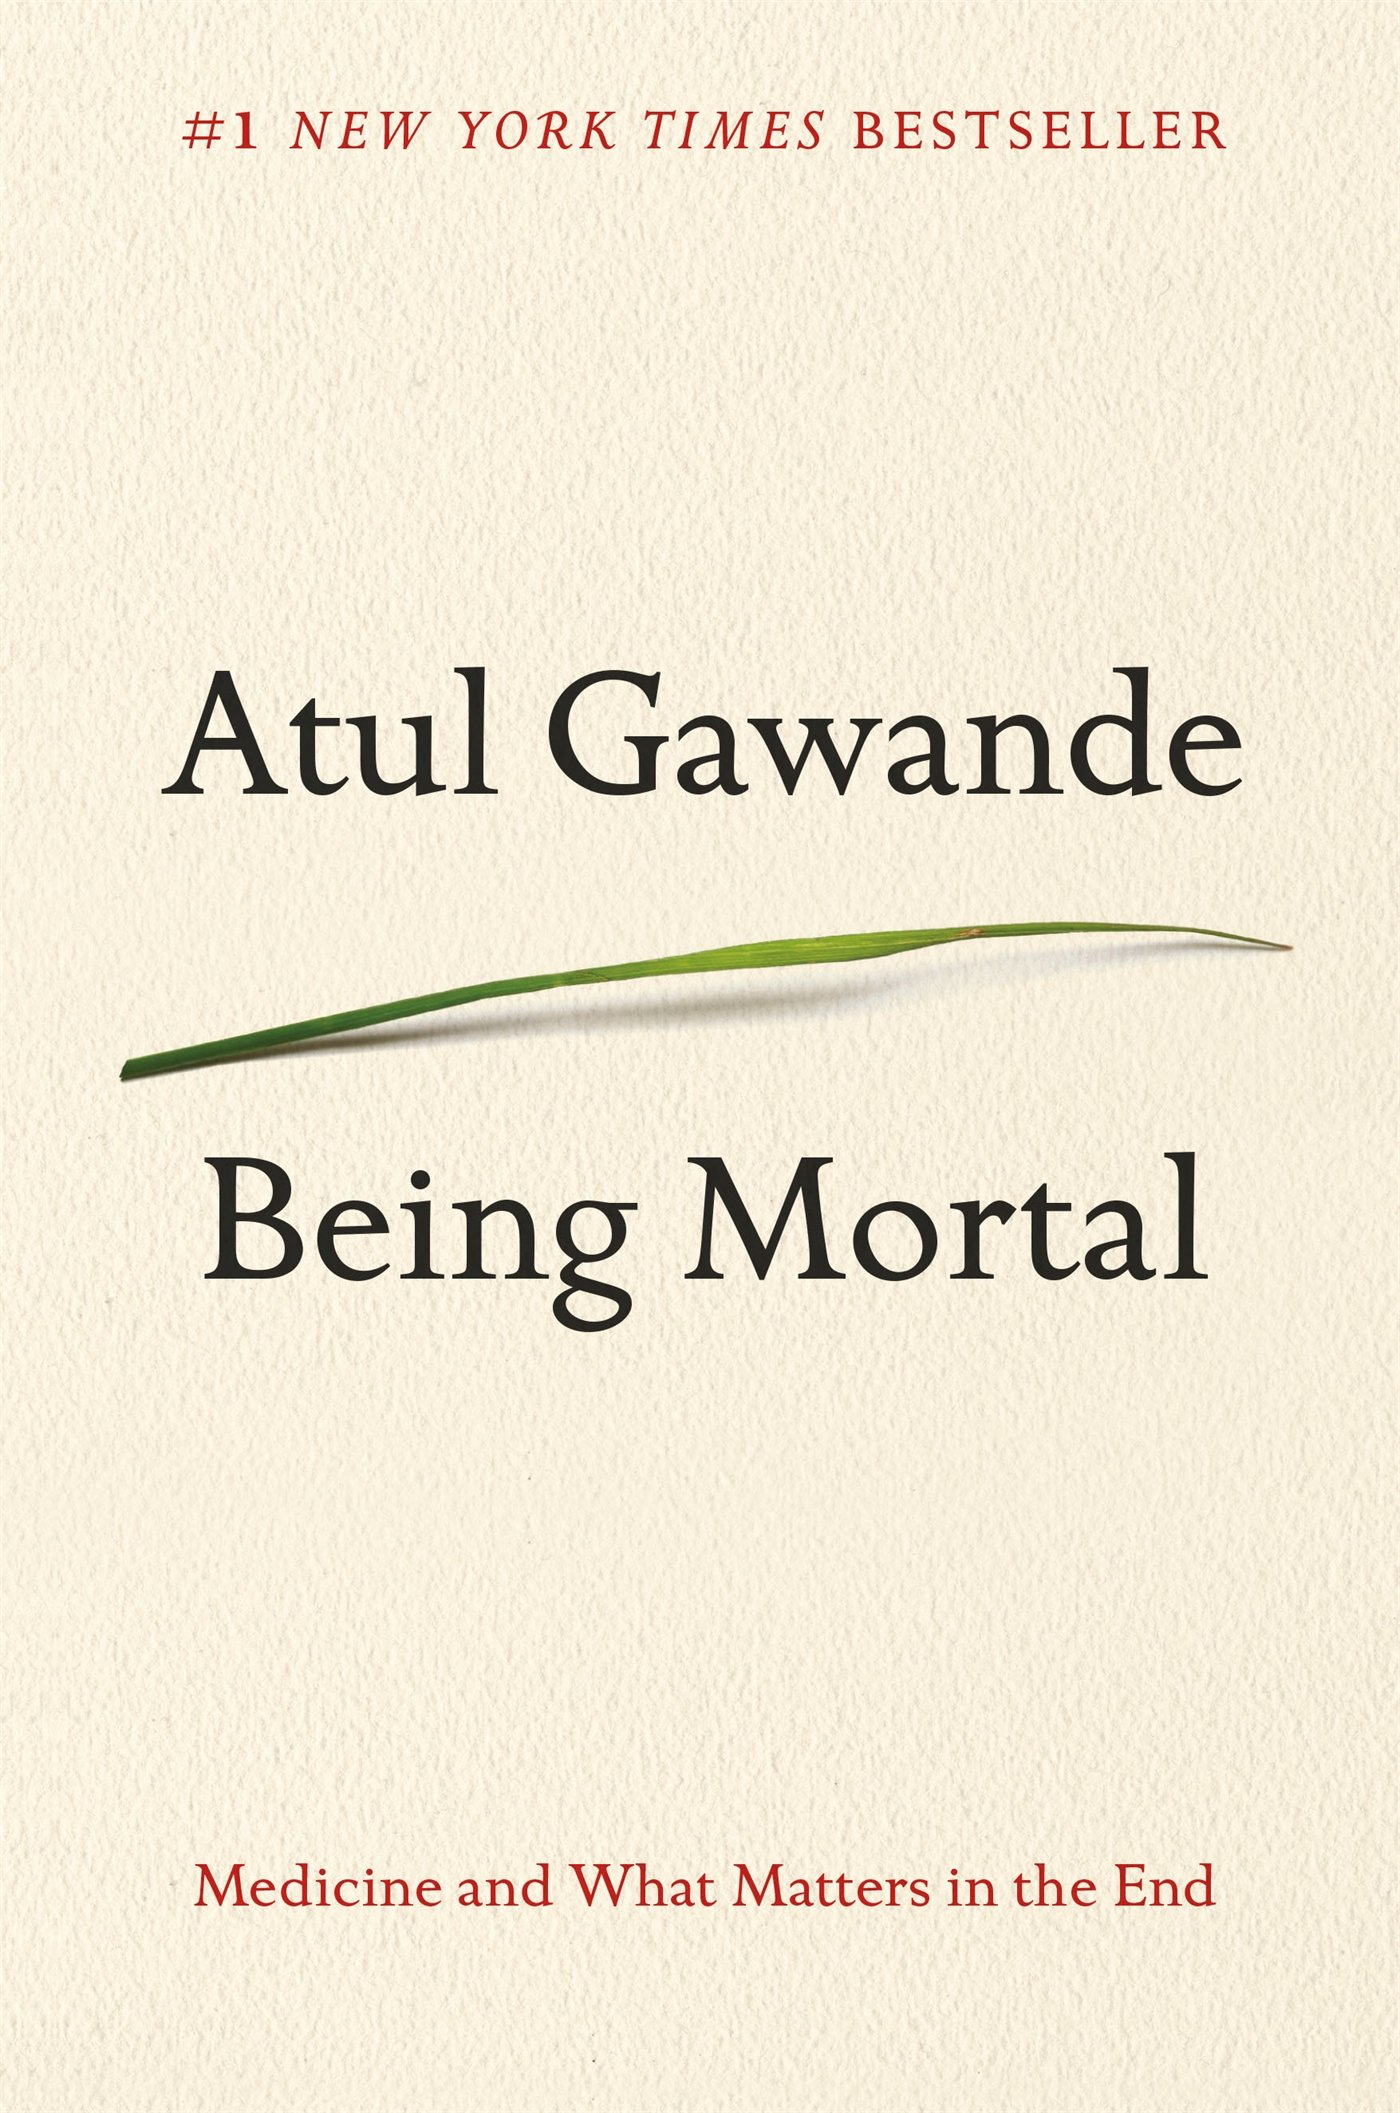 BEING MORTAL ATUL GAWANDE PDF DOWNLOAD